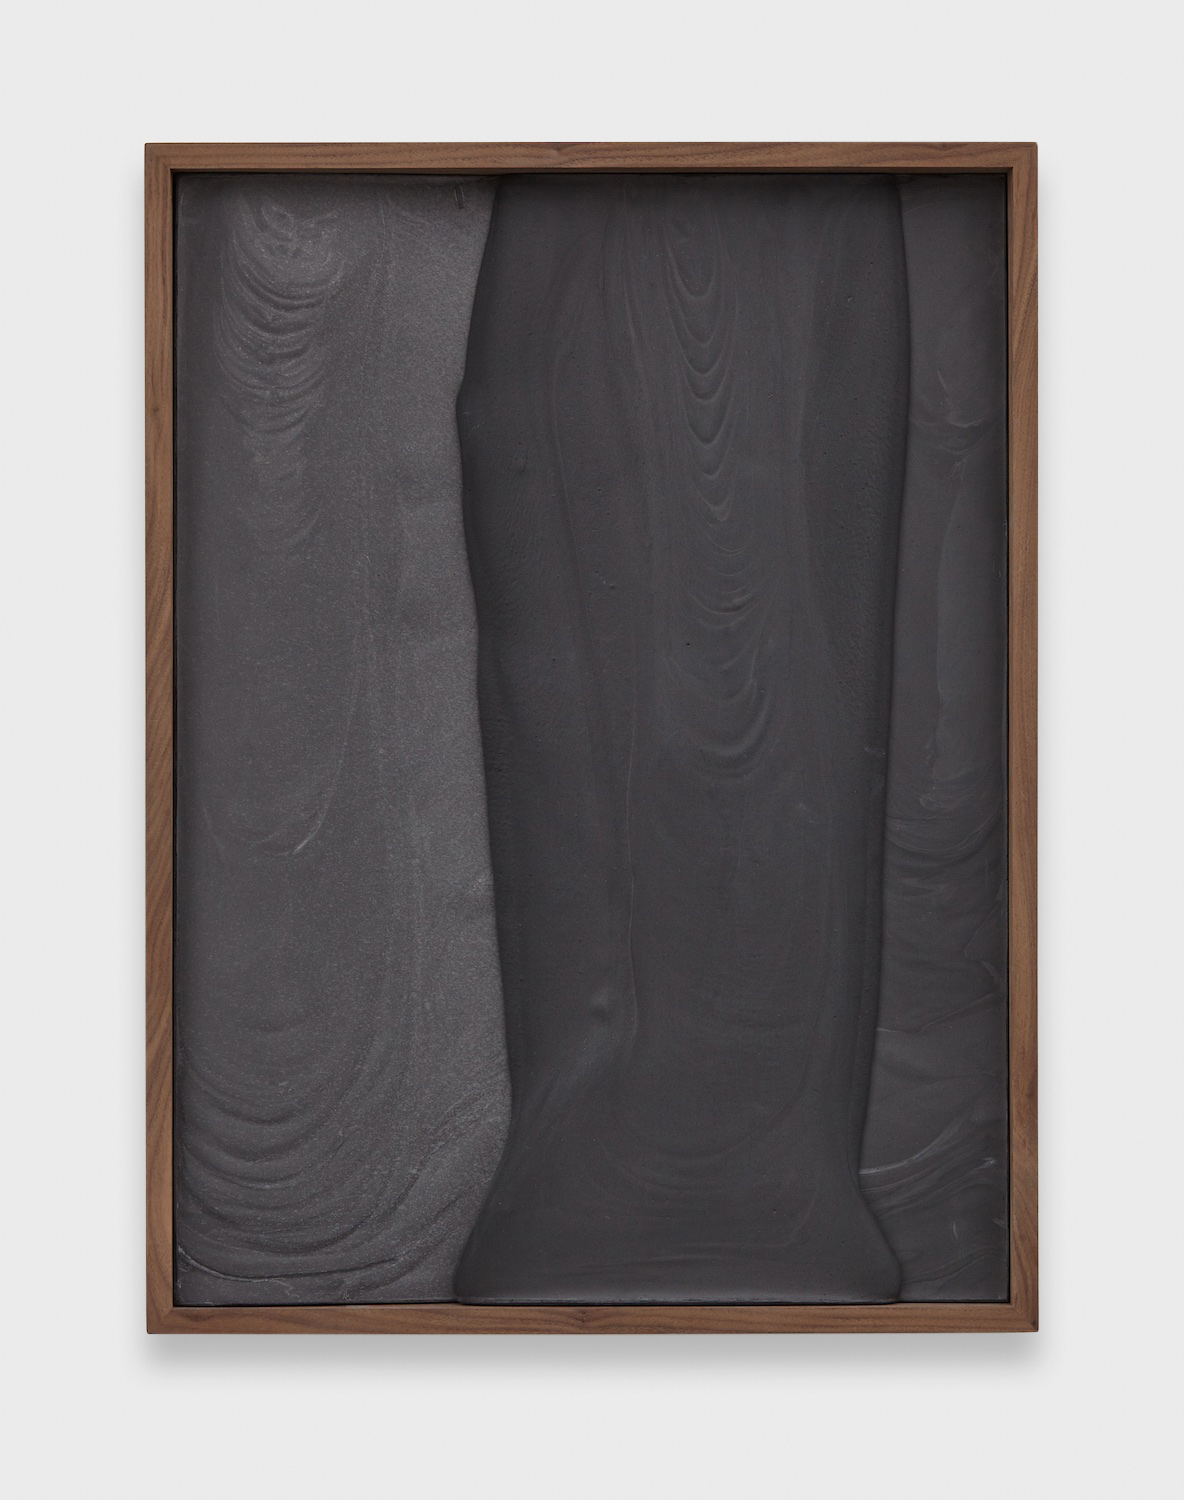 Anthony Pearson  Untitled (Plaster Positive)  2015 Pigmented hydrocal in walnut frame  28 ½h x 21 ½w x 3d in  AP371